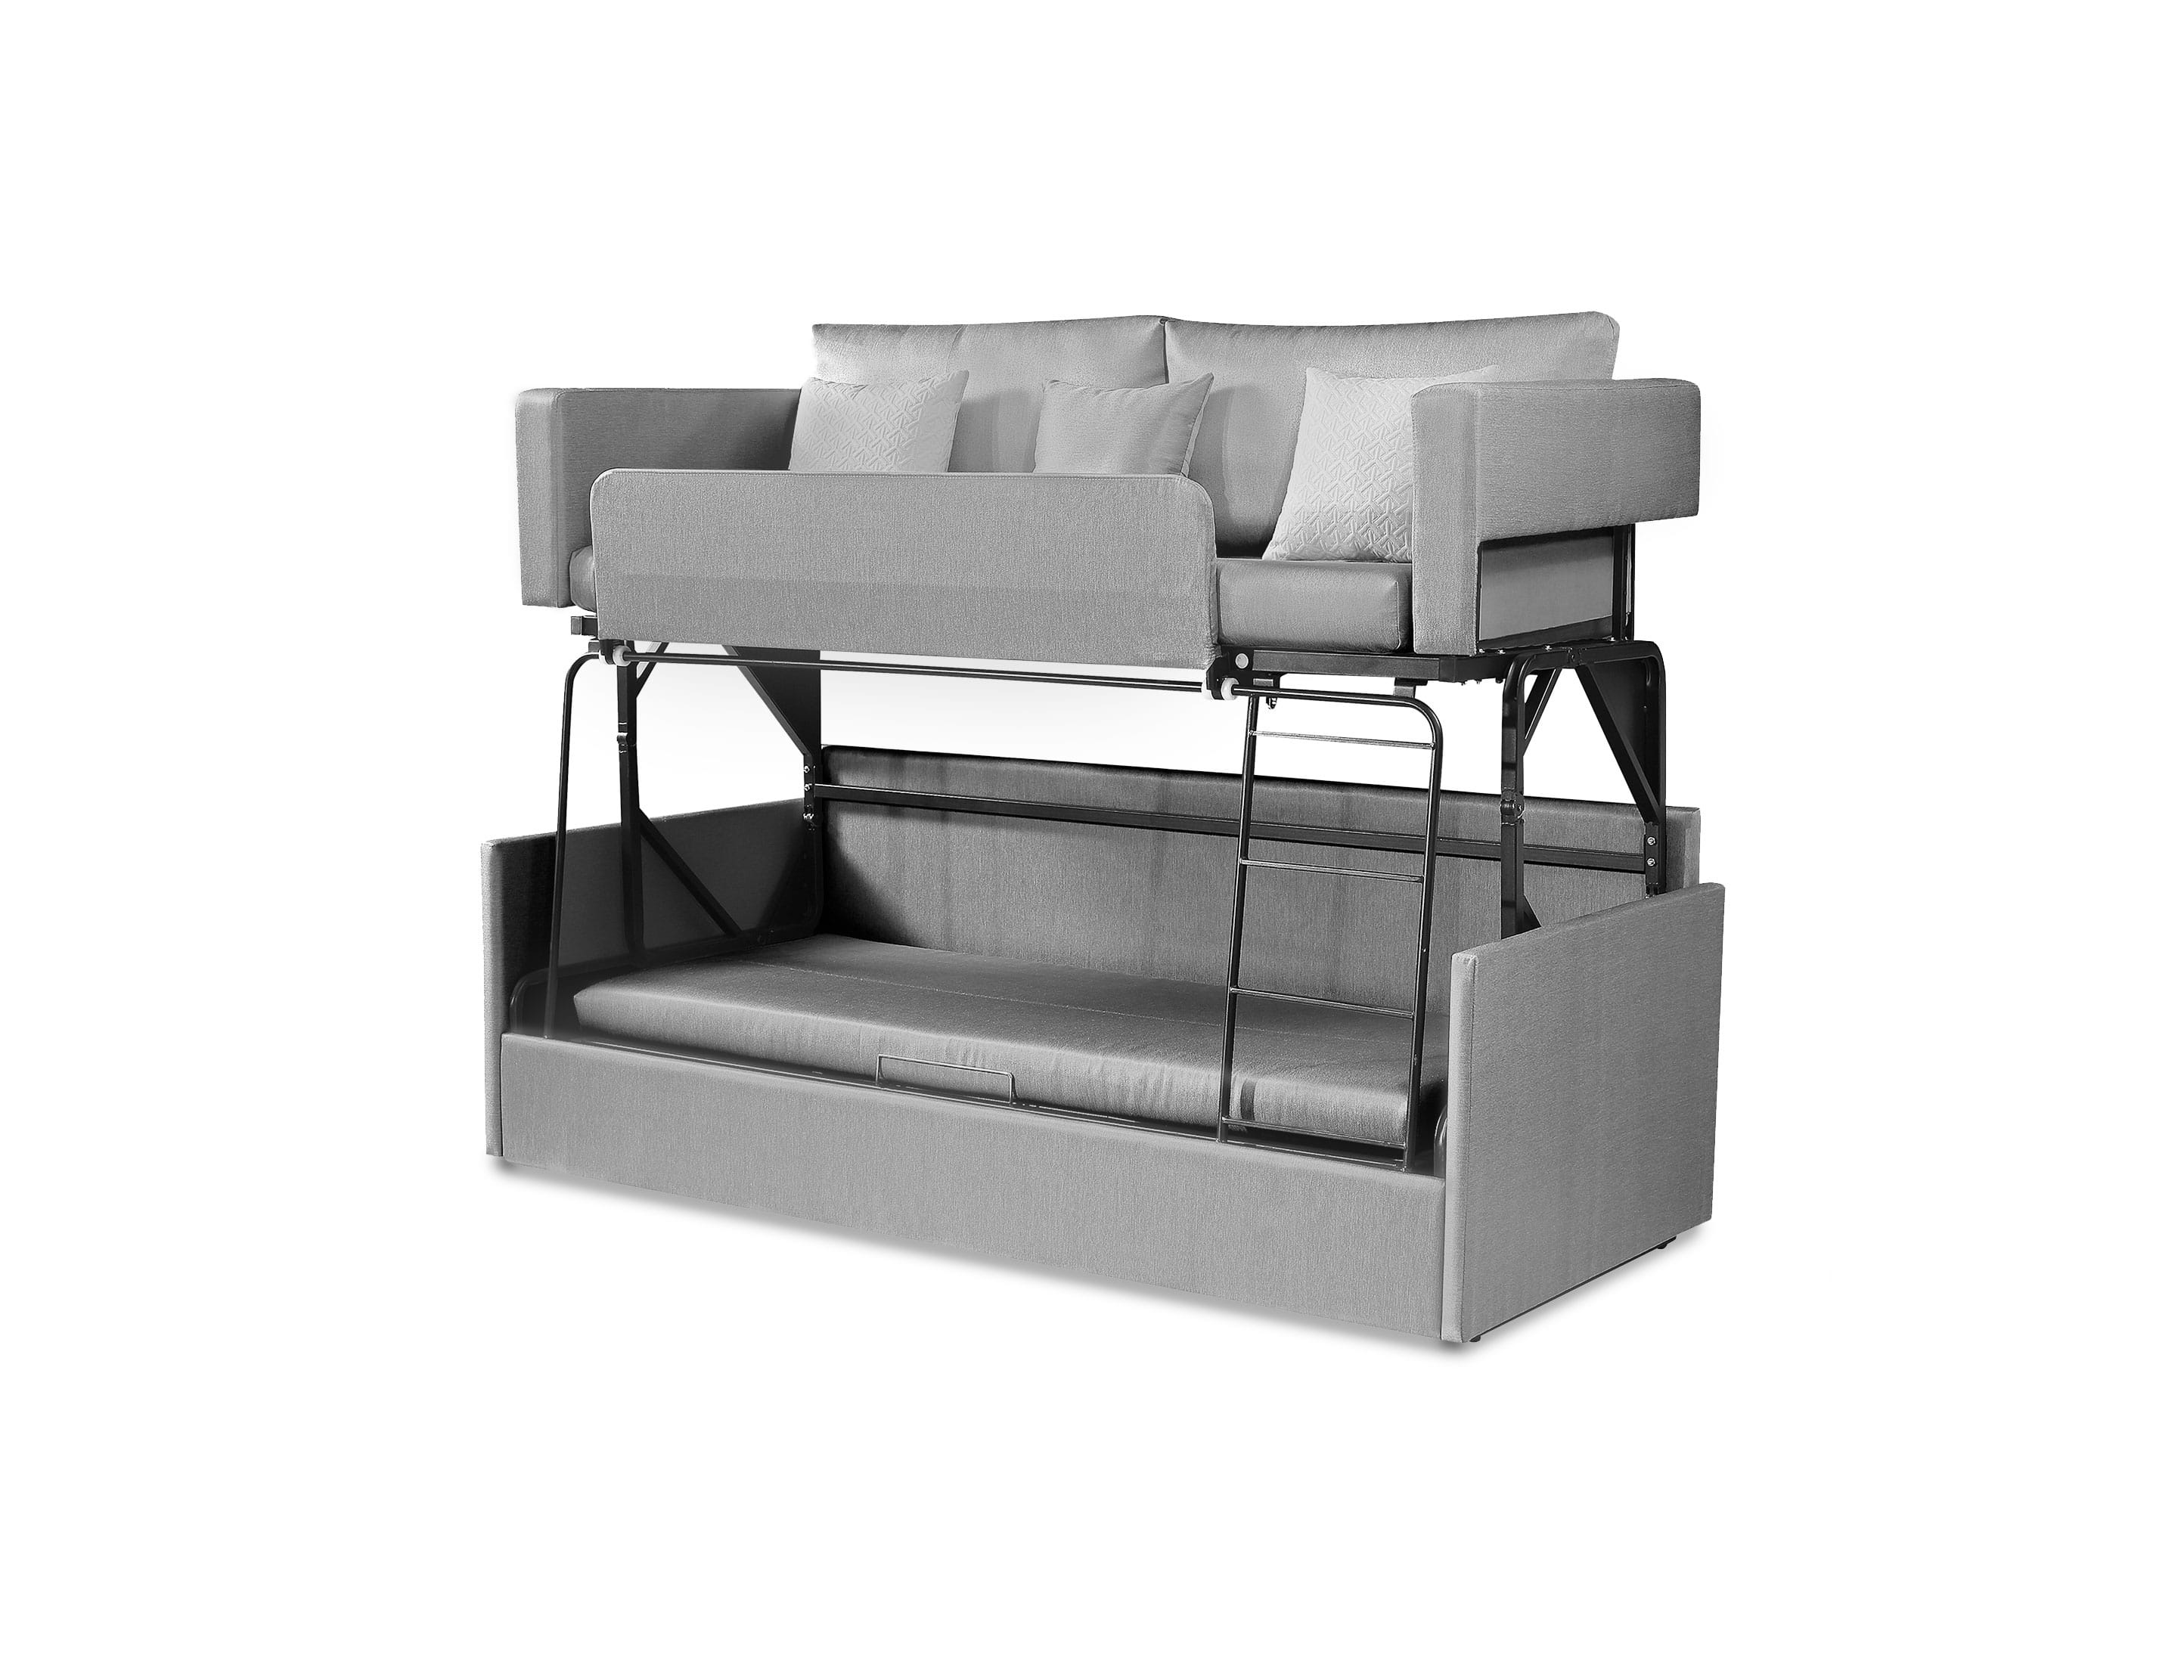 Picture of: The Dormire Bunk Bed Couch Transformer Expand Furniture Folding Tables Smarter Wall Beds Space Savers